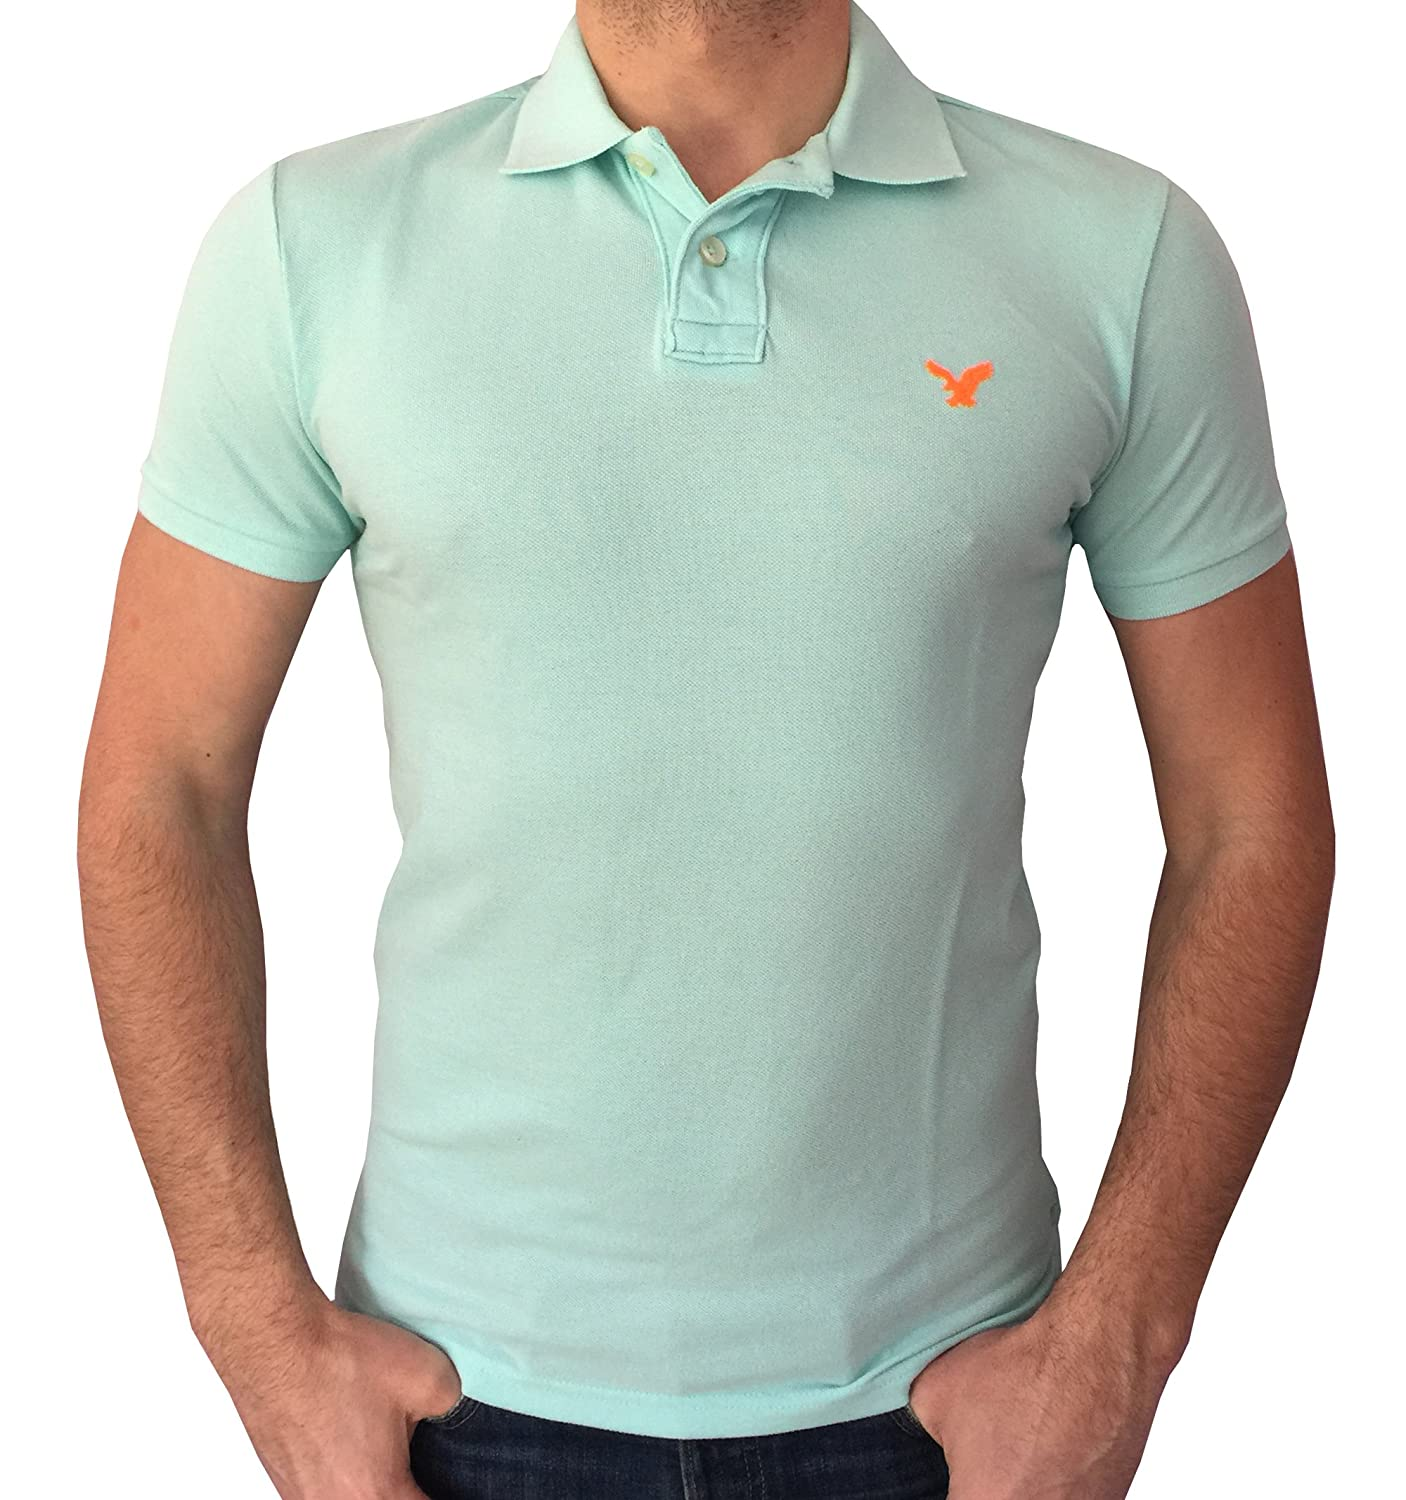 все цены на American Eagle Outfitters Mens Classic Fit Mesh Solid Polo T-shirt онлайн